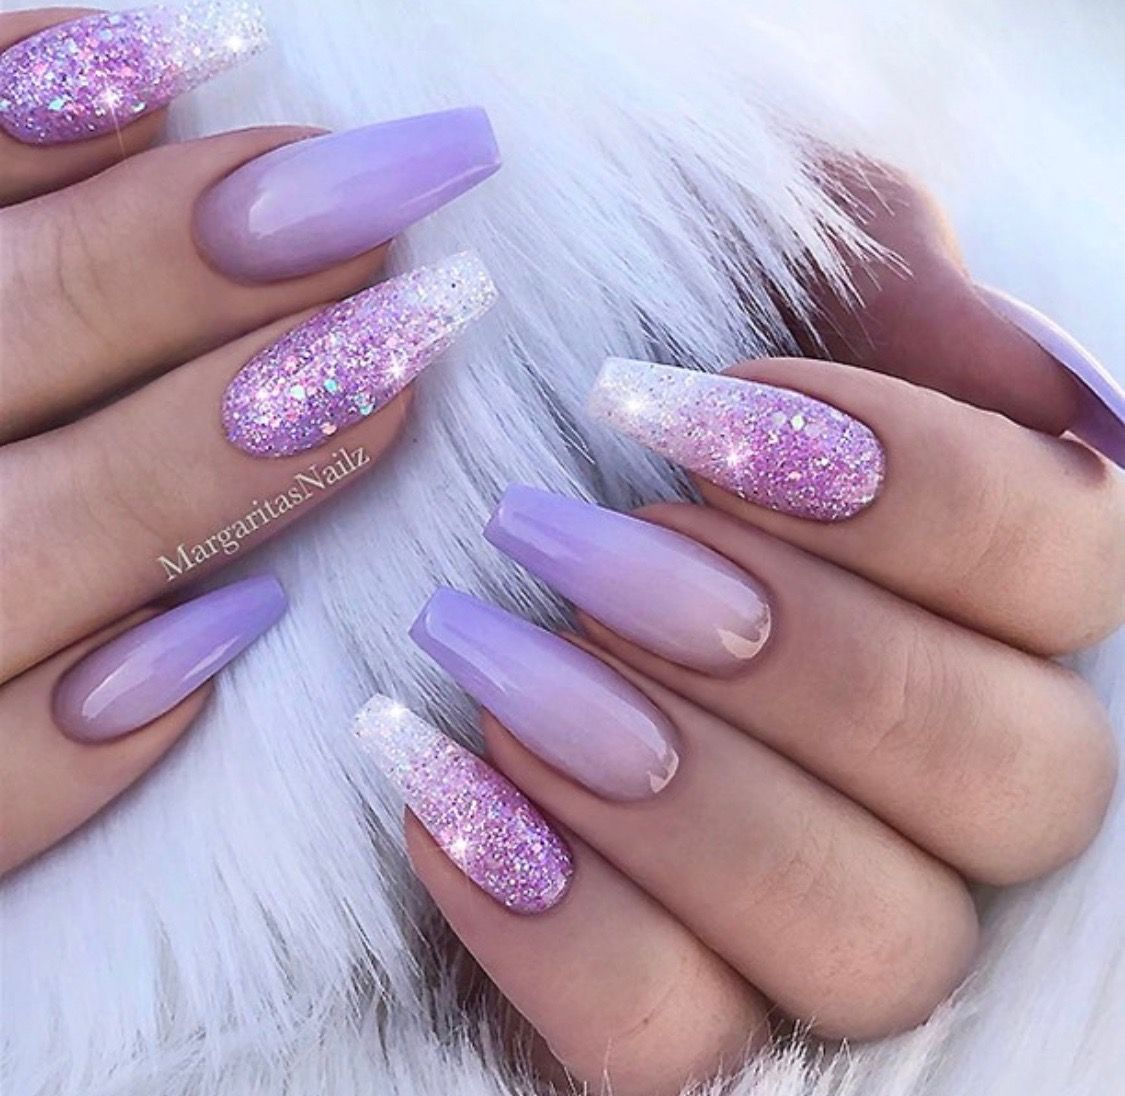 Lilac Lavender Nails With Images Lilac Nails Design Lilac Nails Ombre Nails Glitter